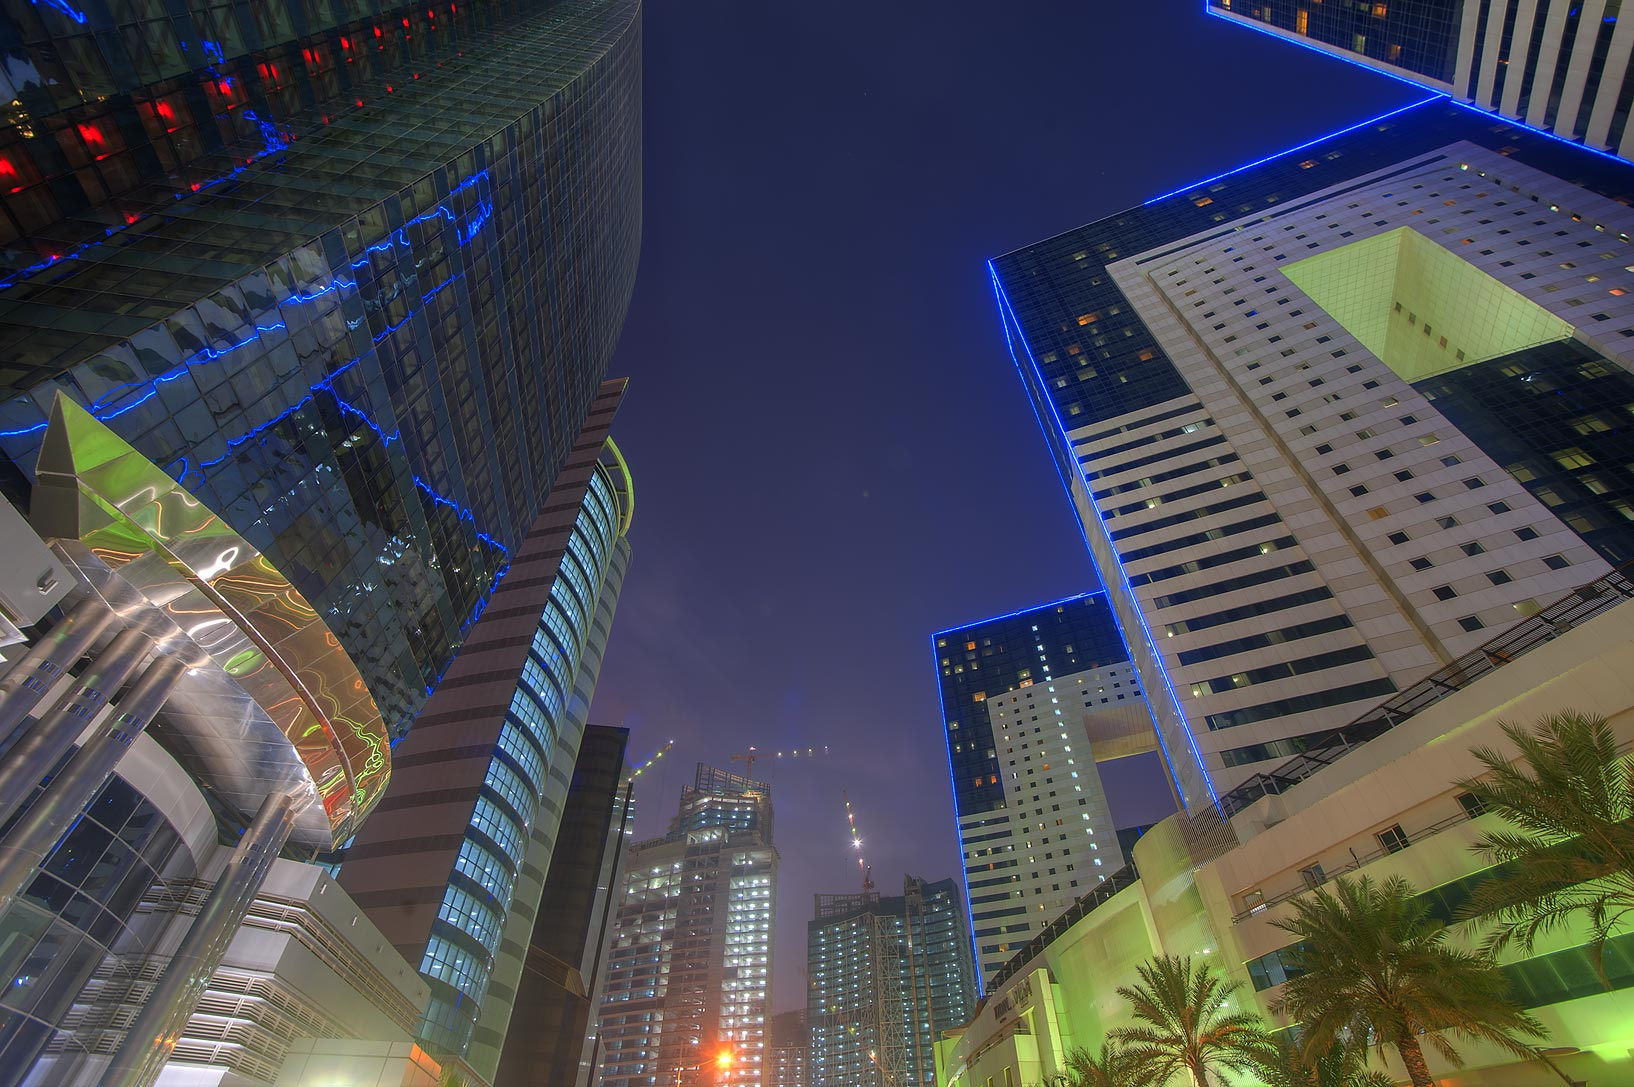 Al Betra St. in West Bay at evening. Doha, Qatar